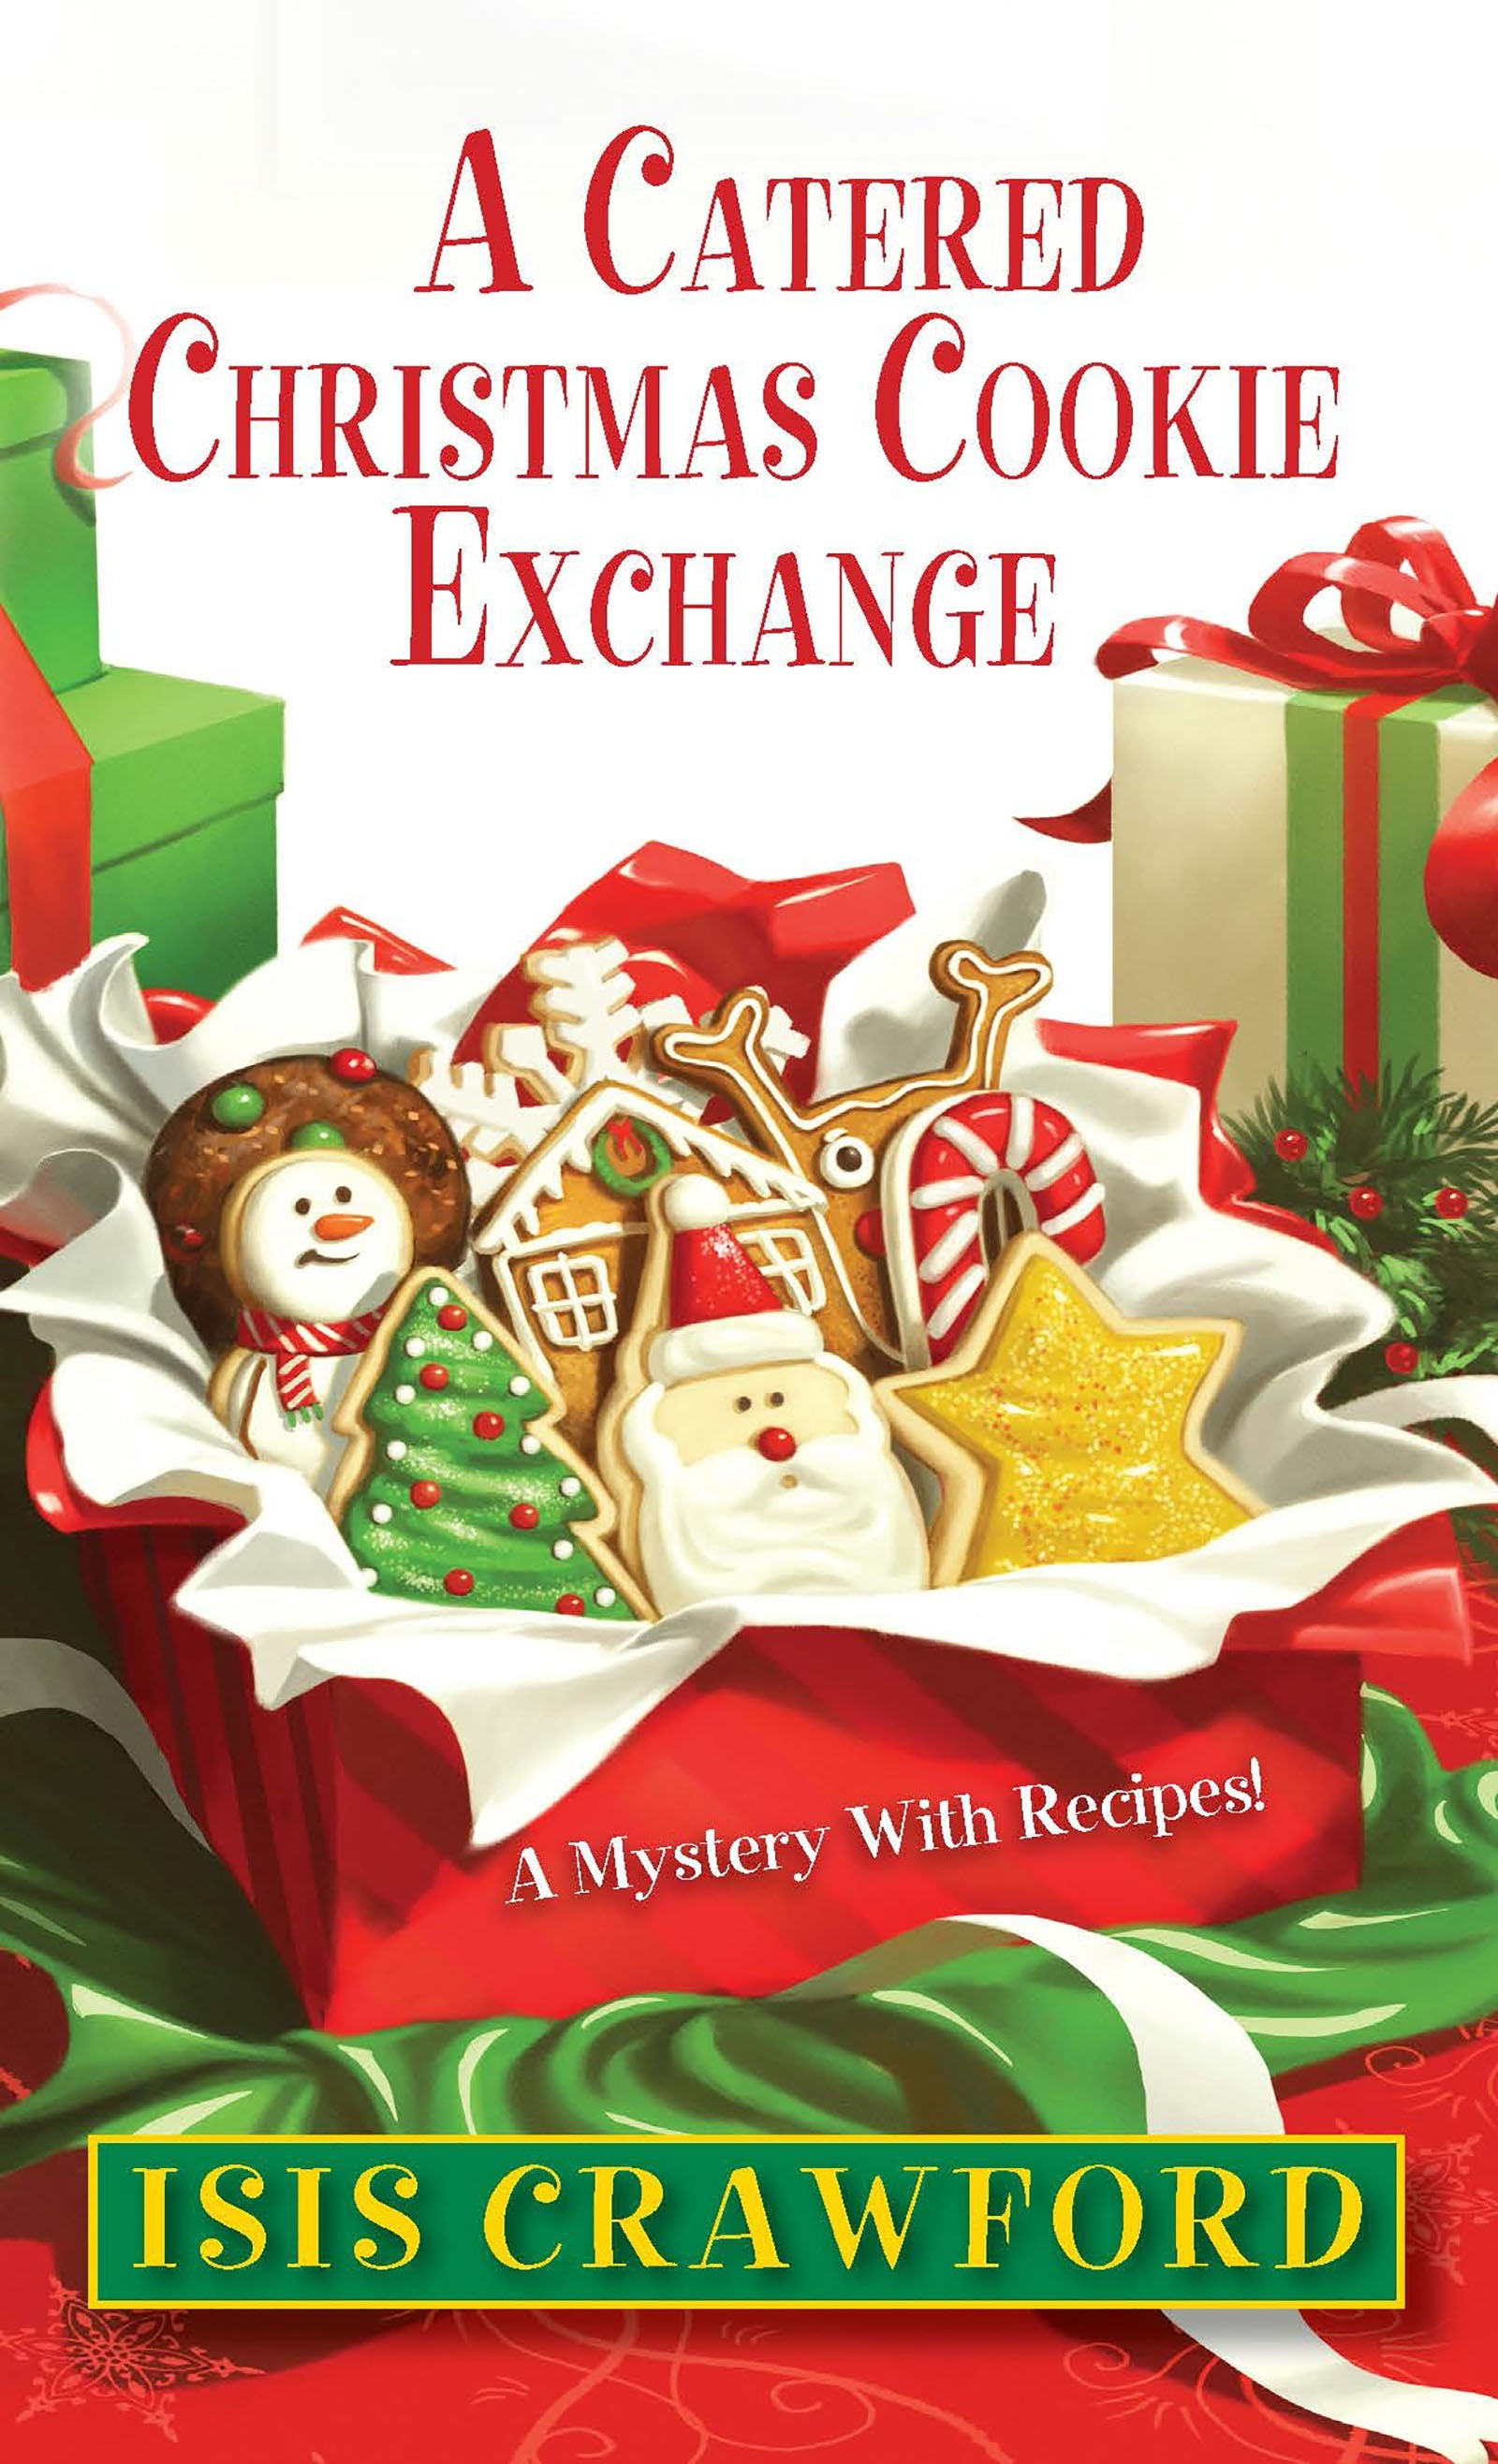 Our authors exchange